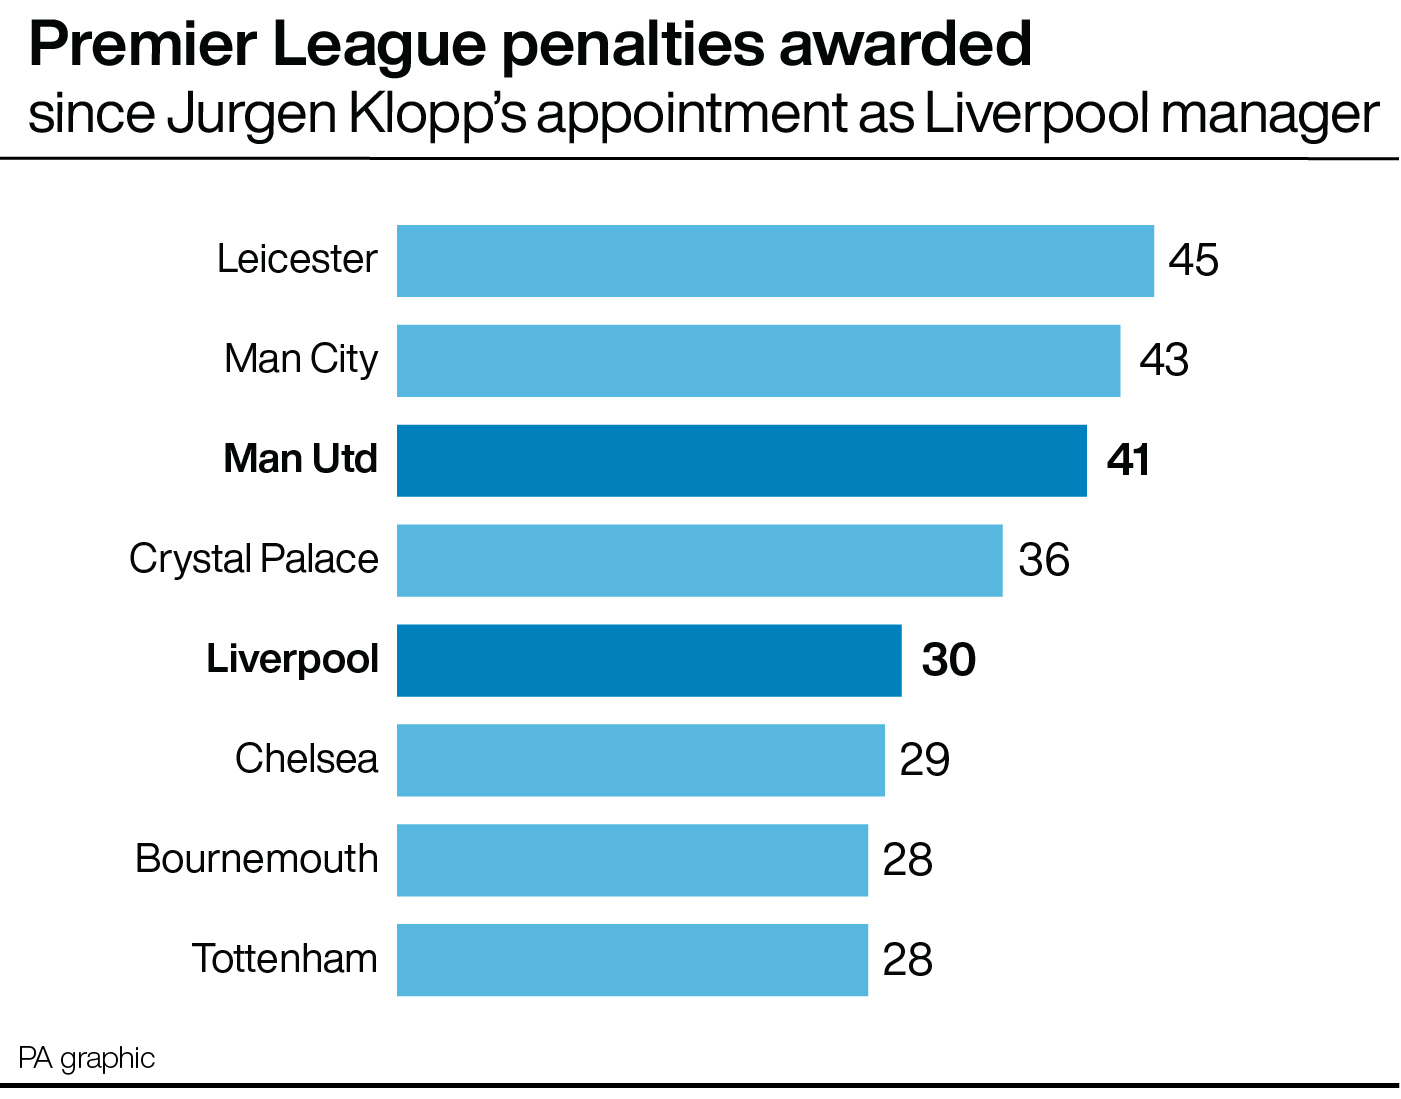 Premier League penalties awarded since Jurgen Klopp's appointment at Liverpool